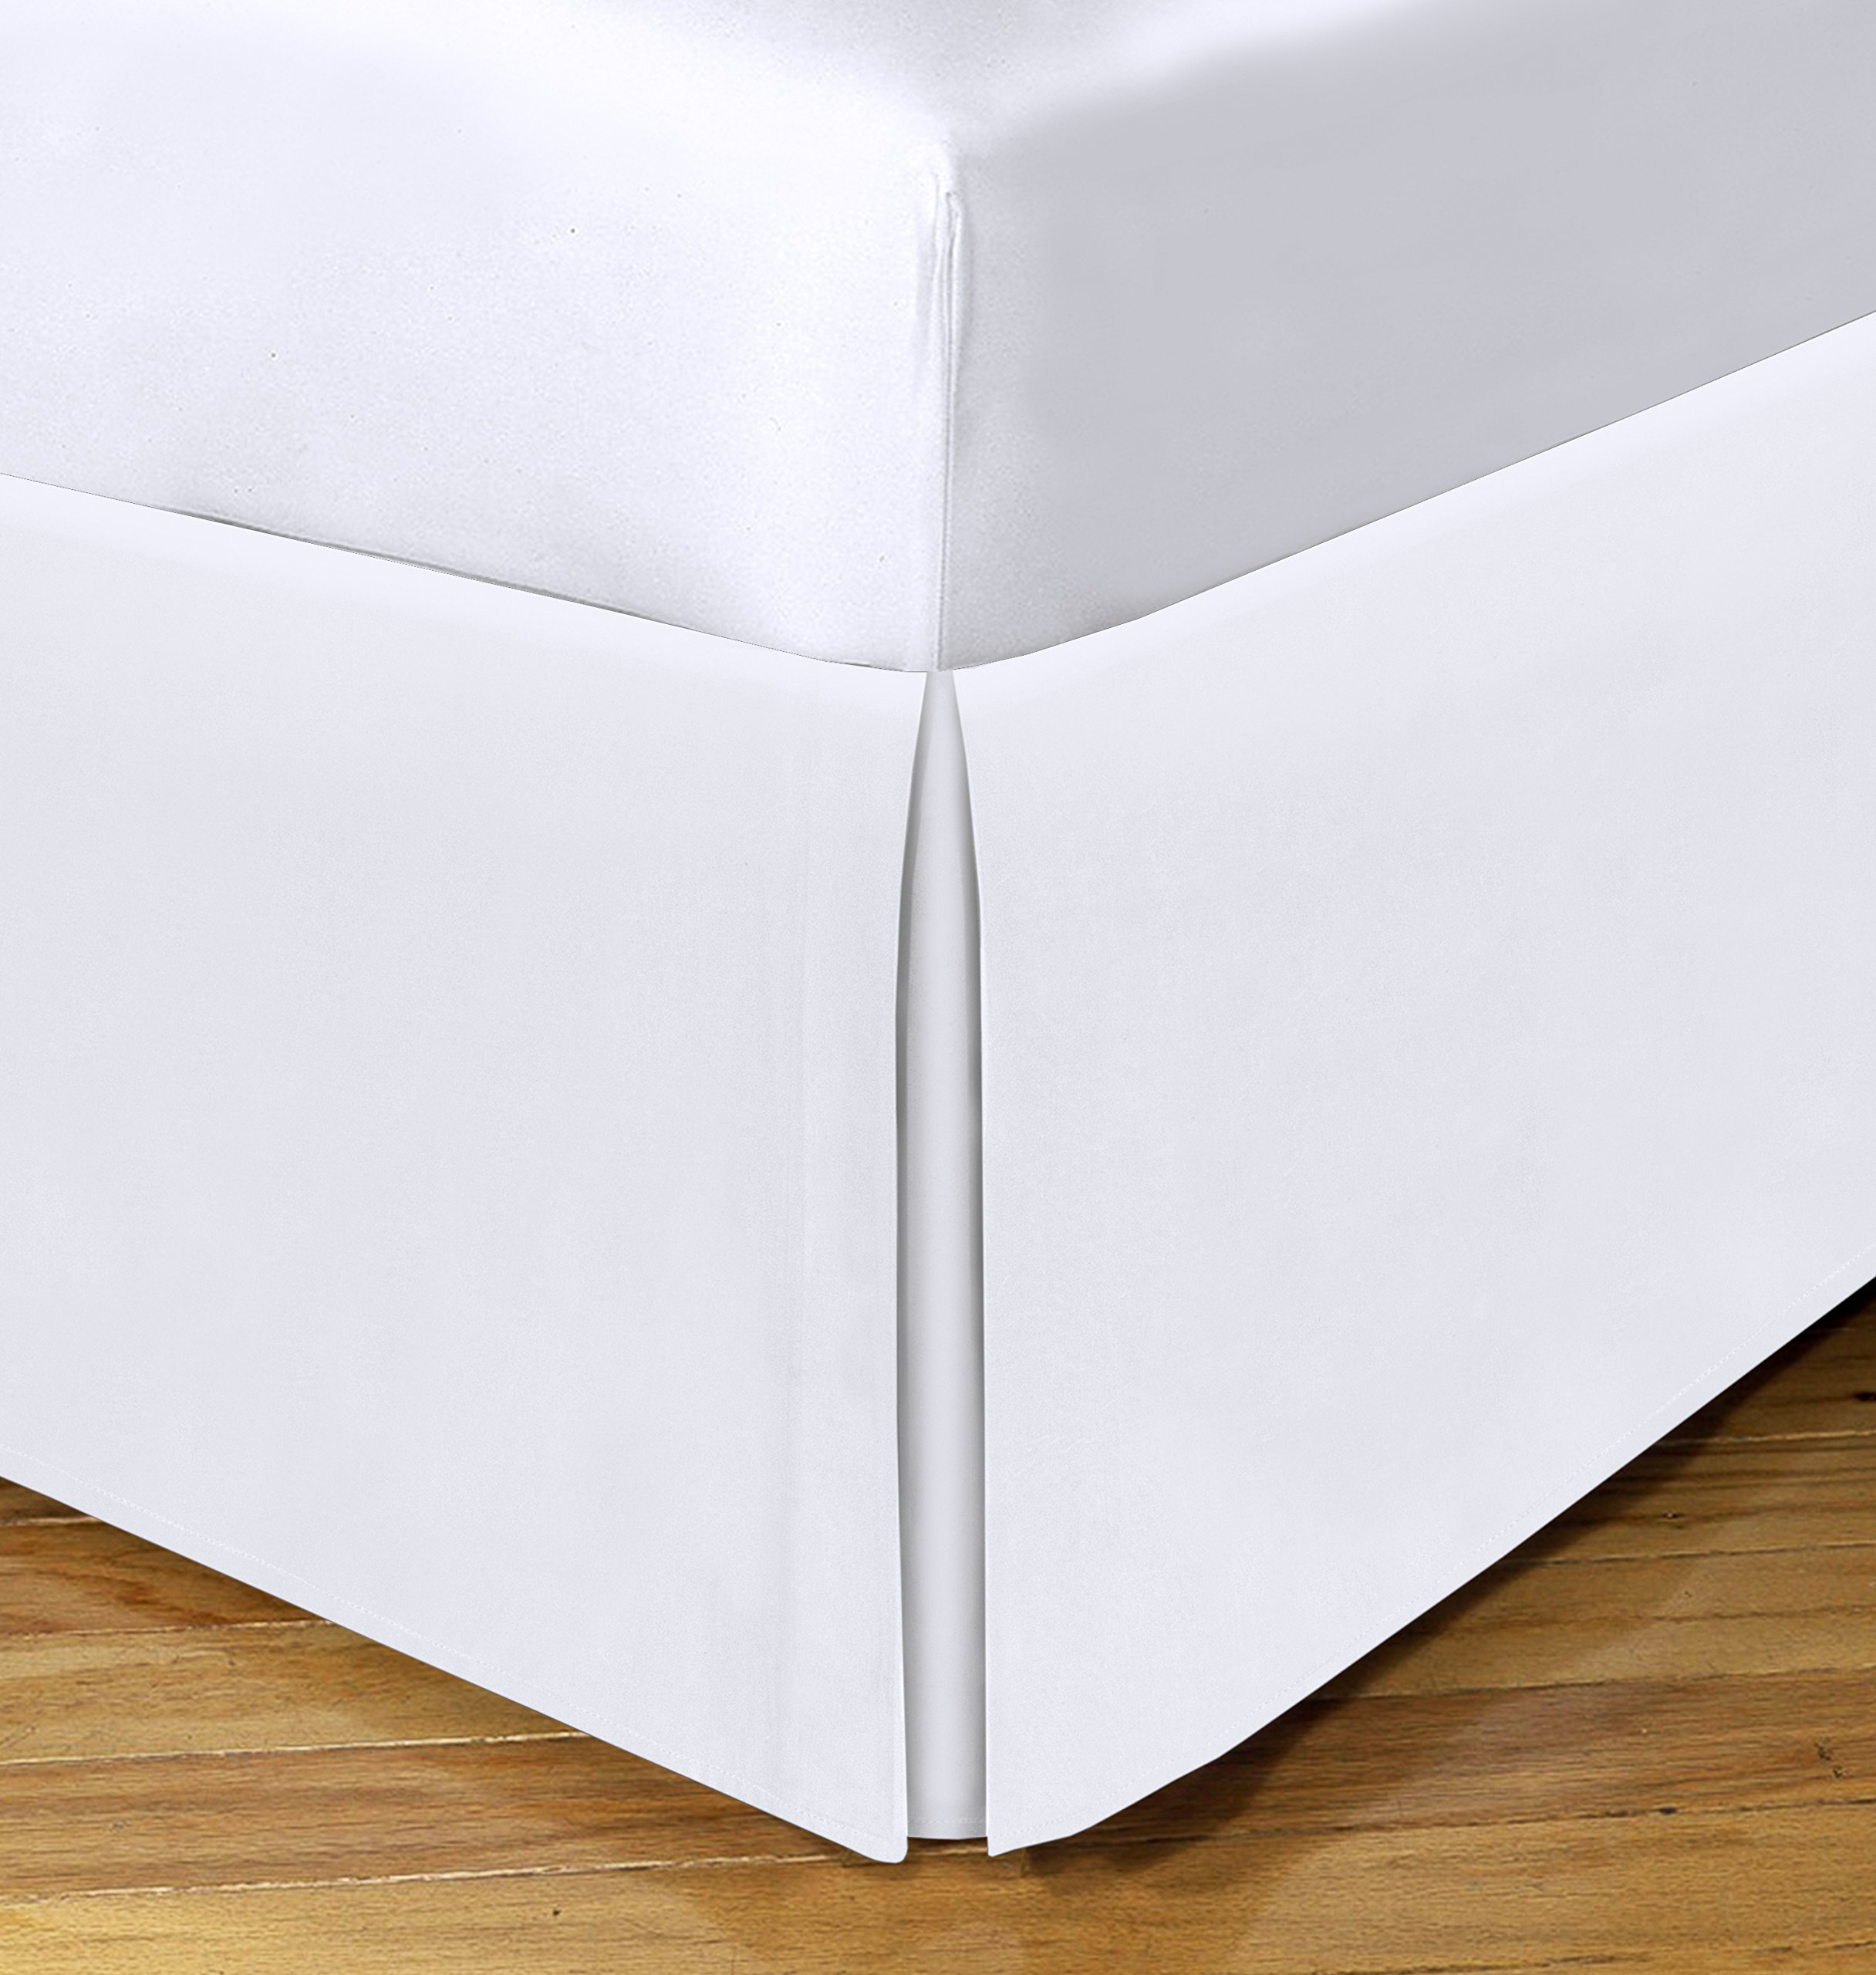 Spacemaker Polyester Bed Skirt – Extra Long Bedskirt Hides Bed Risers – Queen – 21 Inches, White